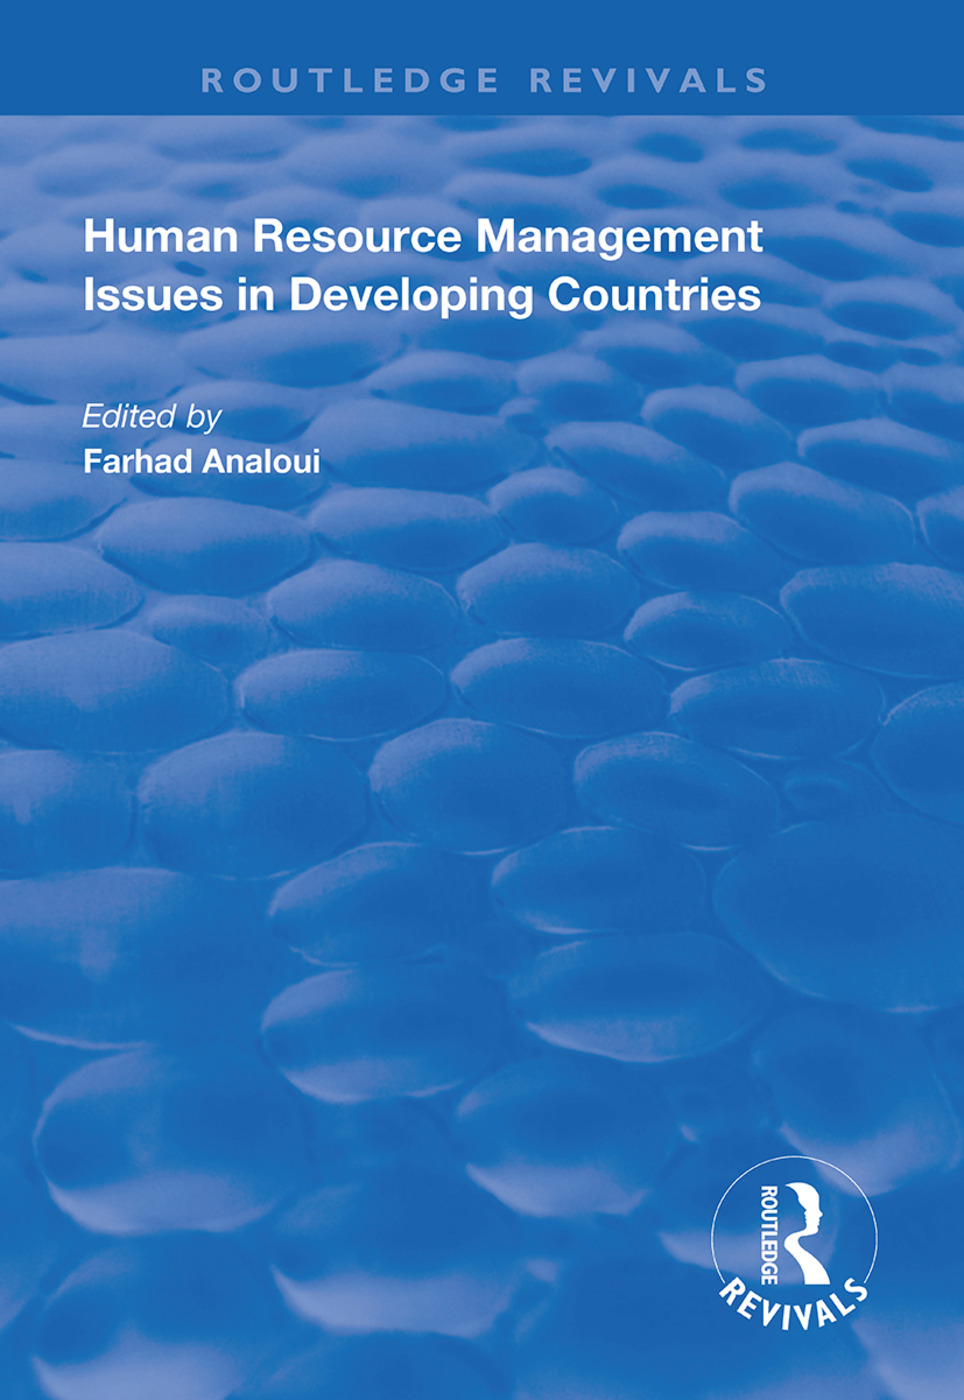 Human Resource Management Issues in Developing Countries